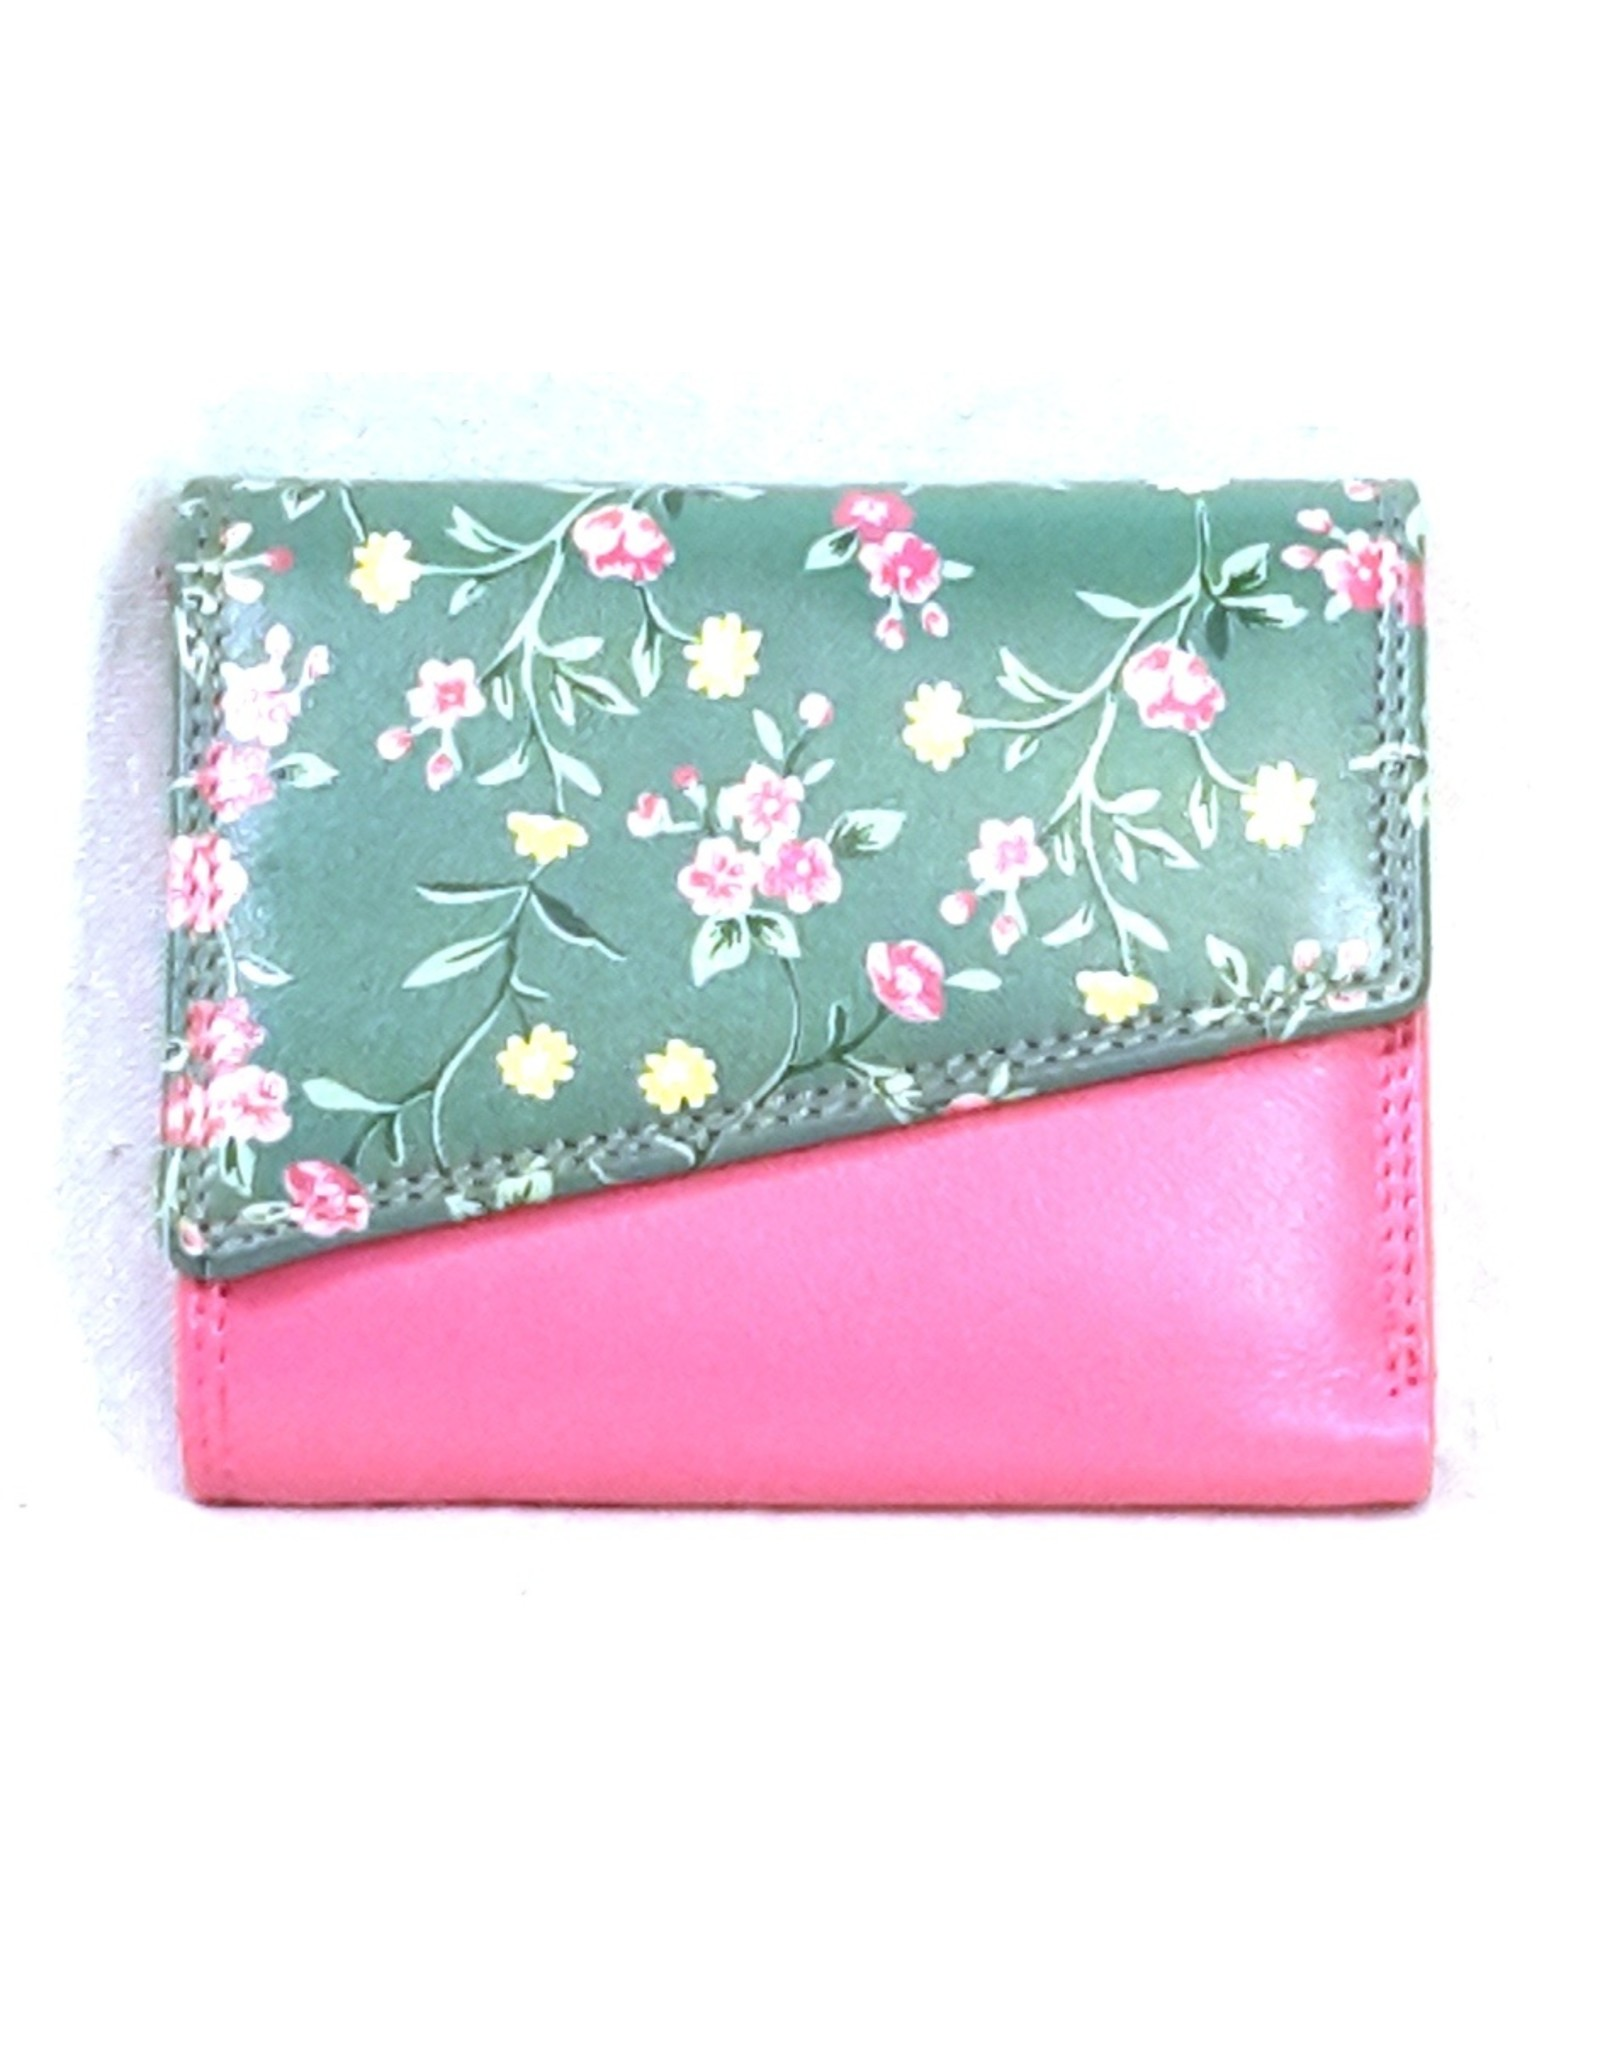 Louis Wallis Leather Wallets -  Leather wallet with floral print on the cover (fuchsia-green)